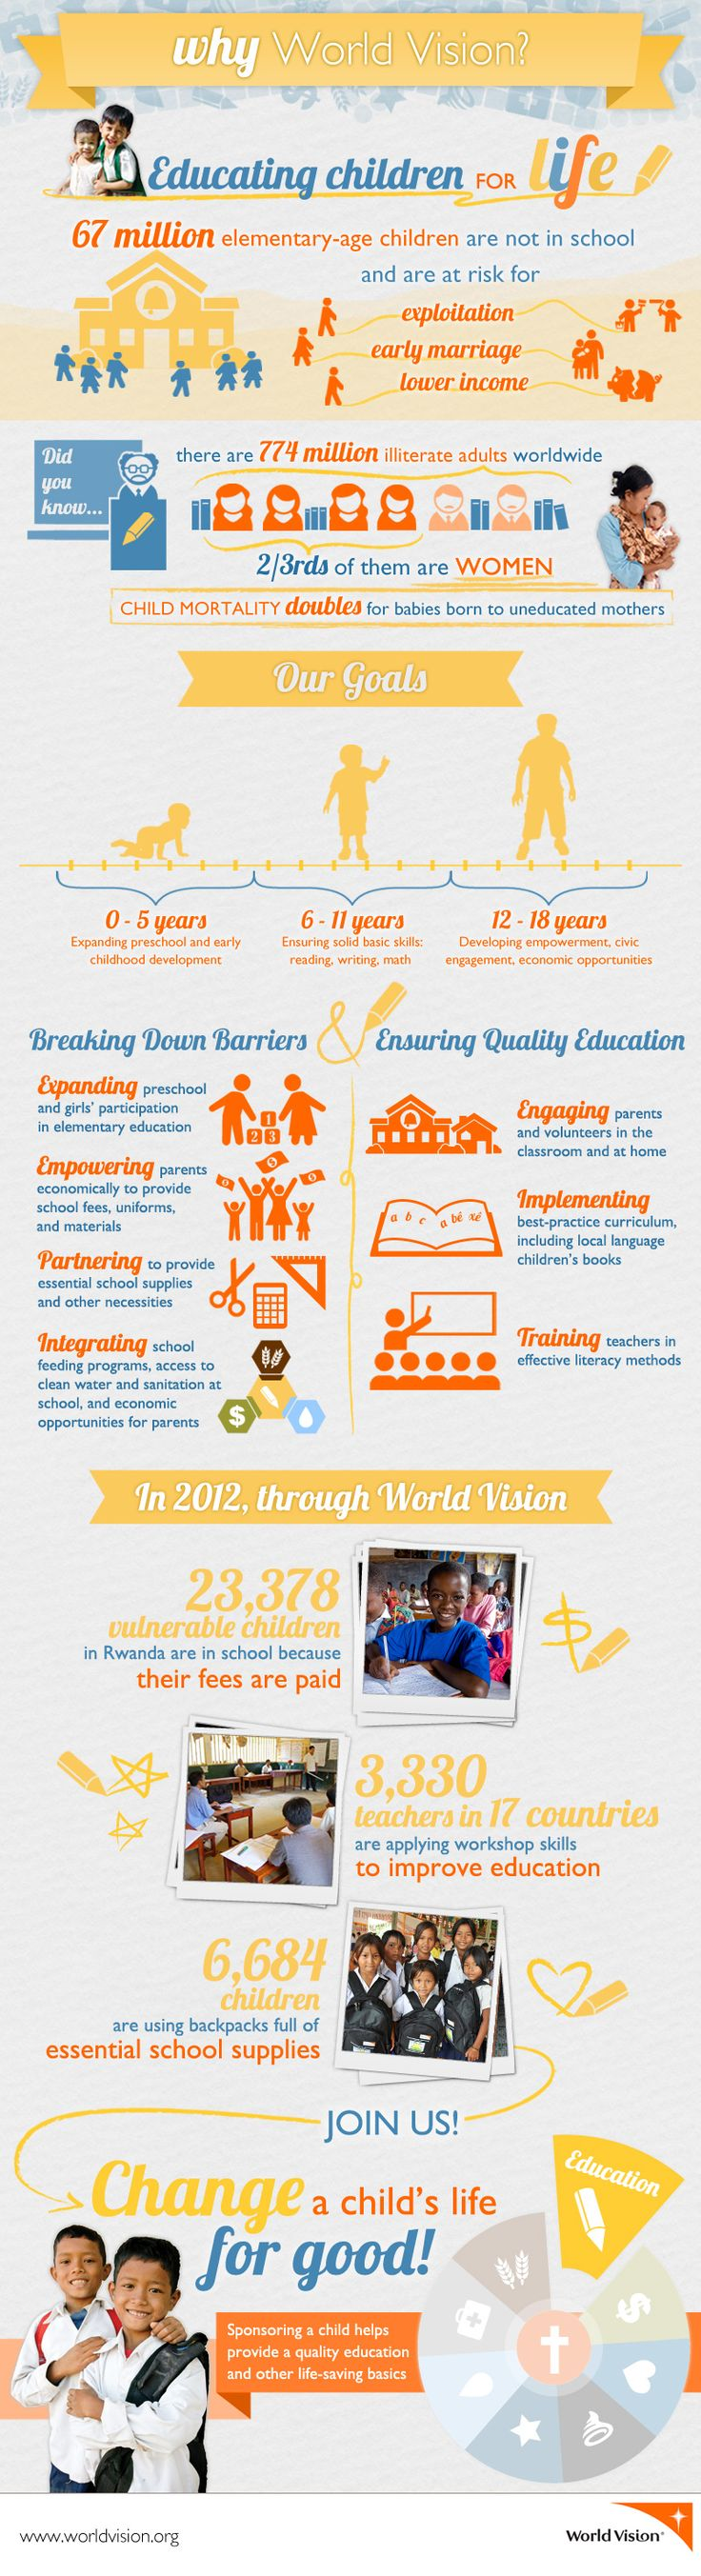 Why World Vision? Educating children for life | World Vision Blog